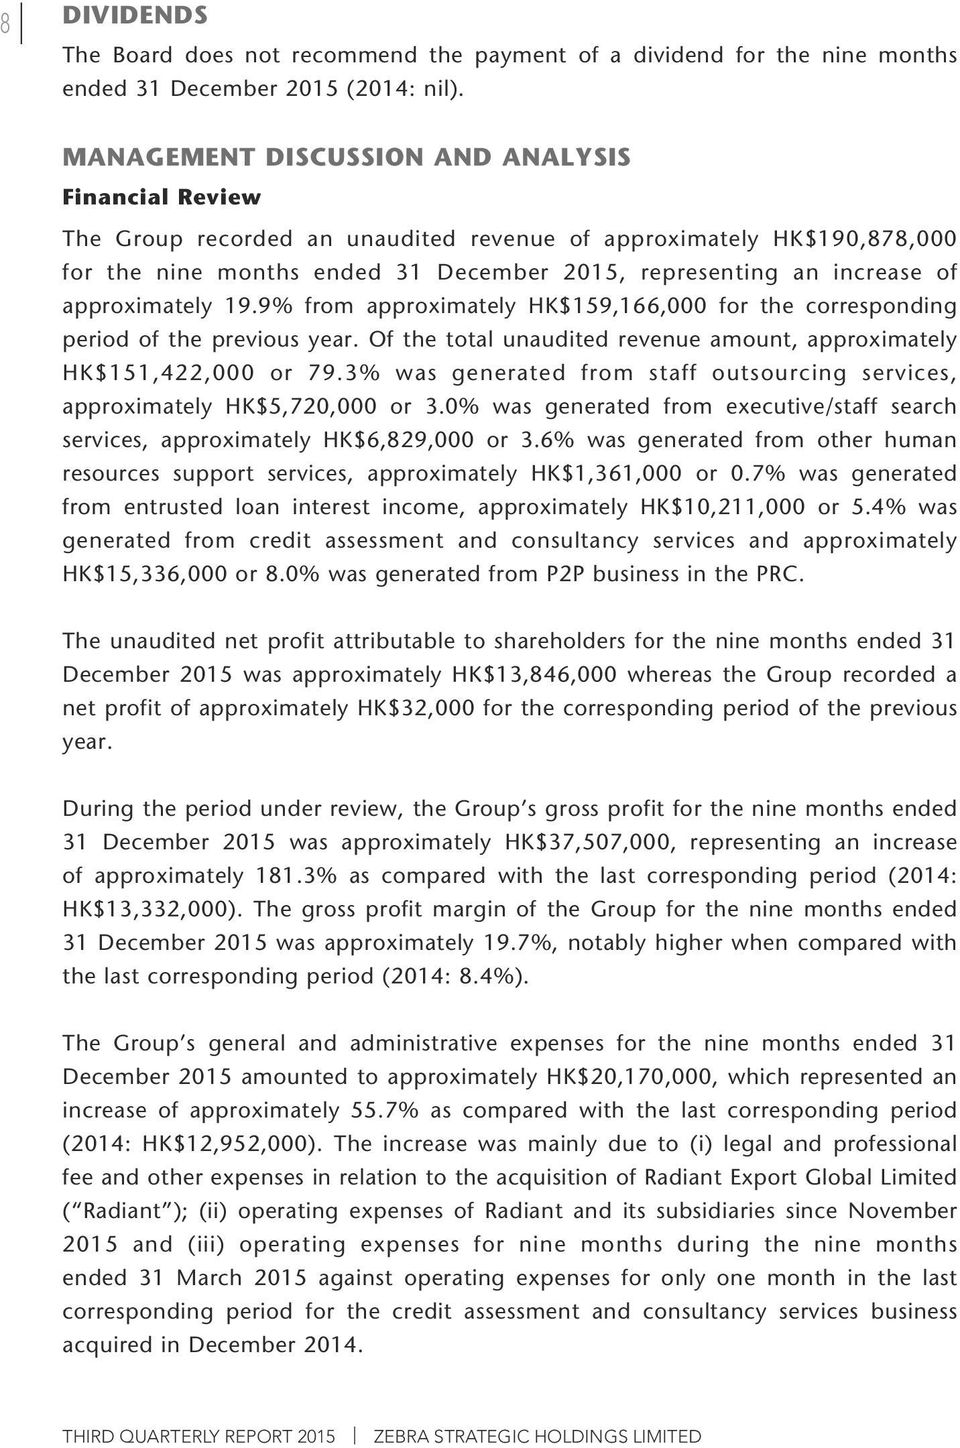 approximately 19.9% from approximately HK$159,166,000 for the corresponding period of the previous year. Of the total unaudited revenue amount, approximately HK$151,422,000 or 79.